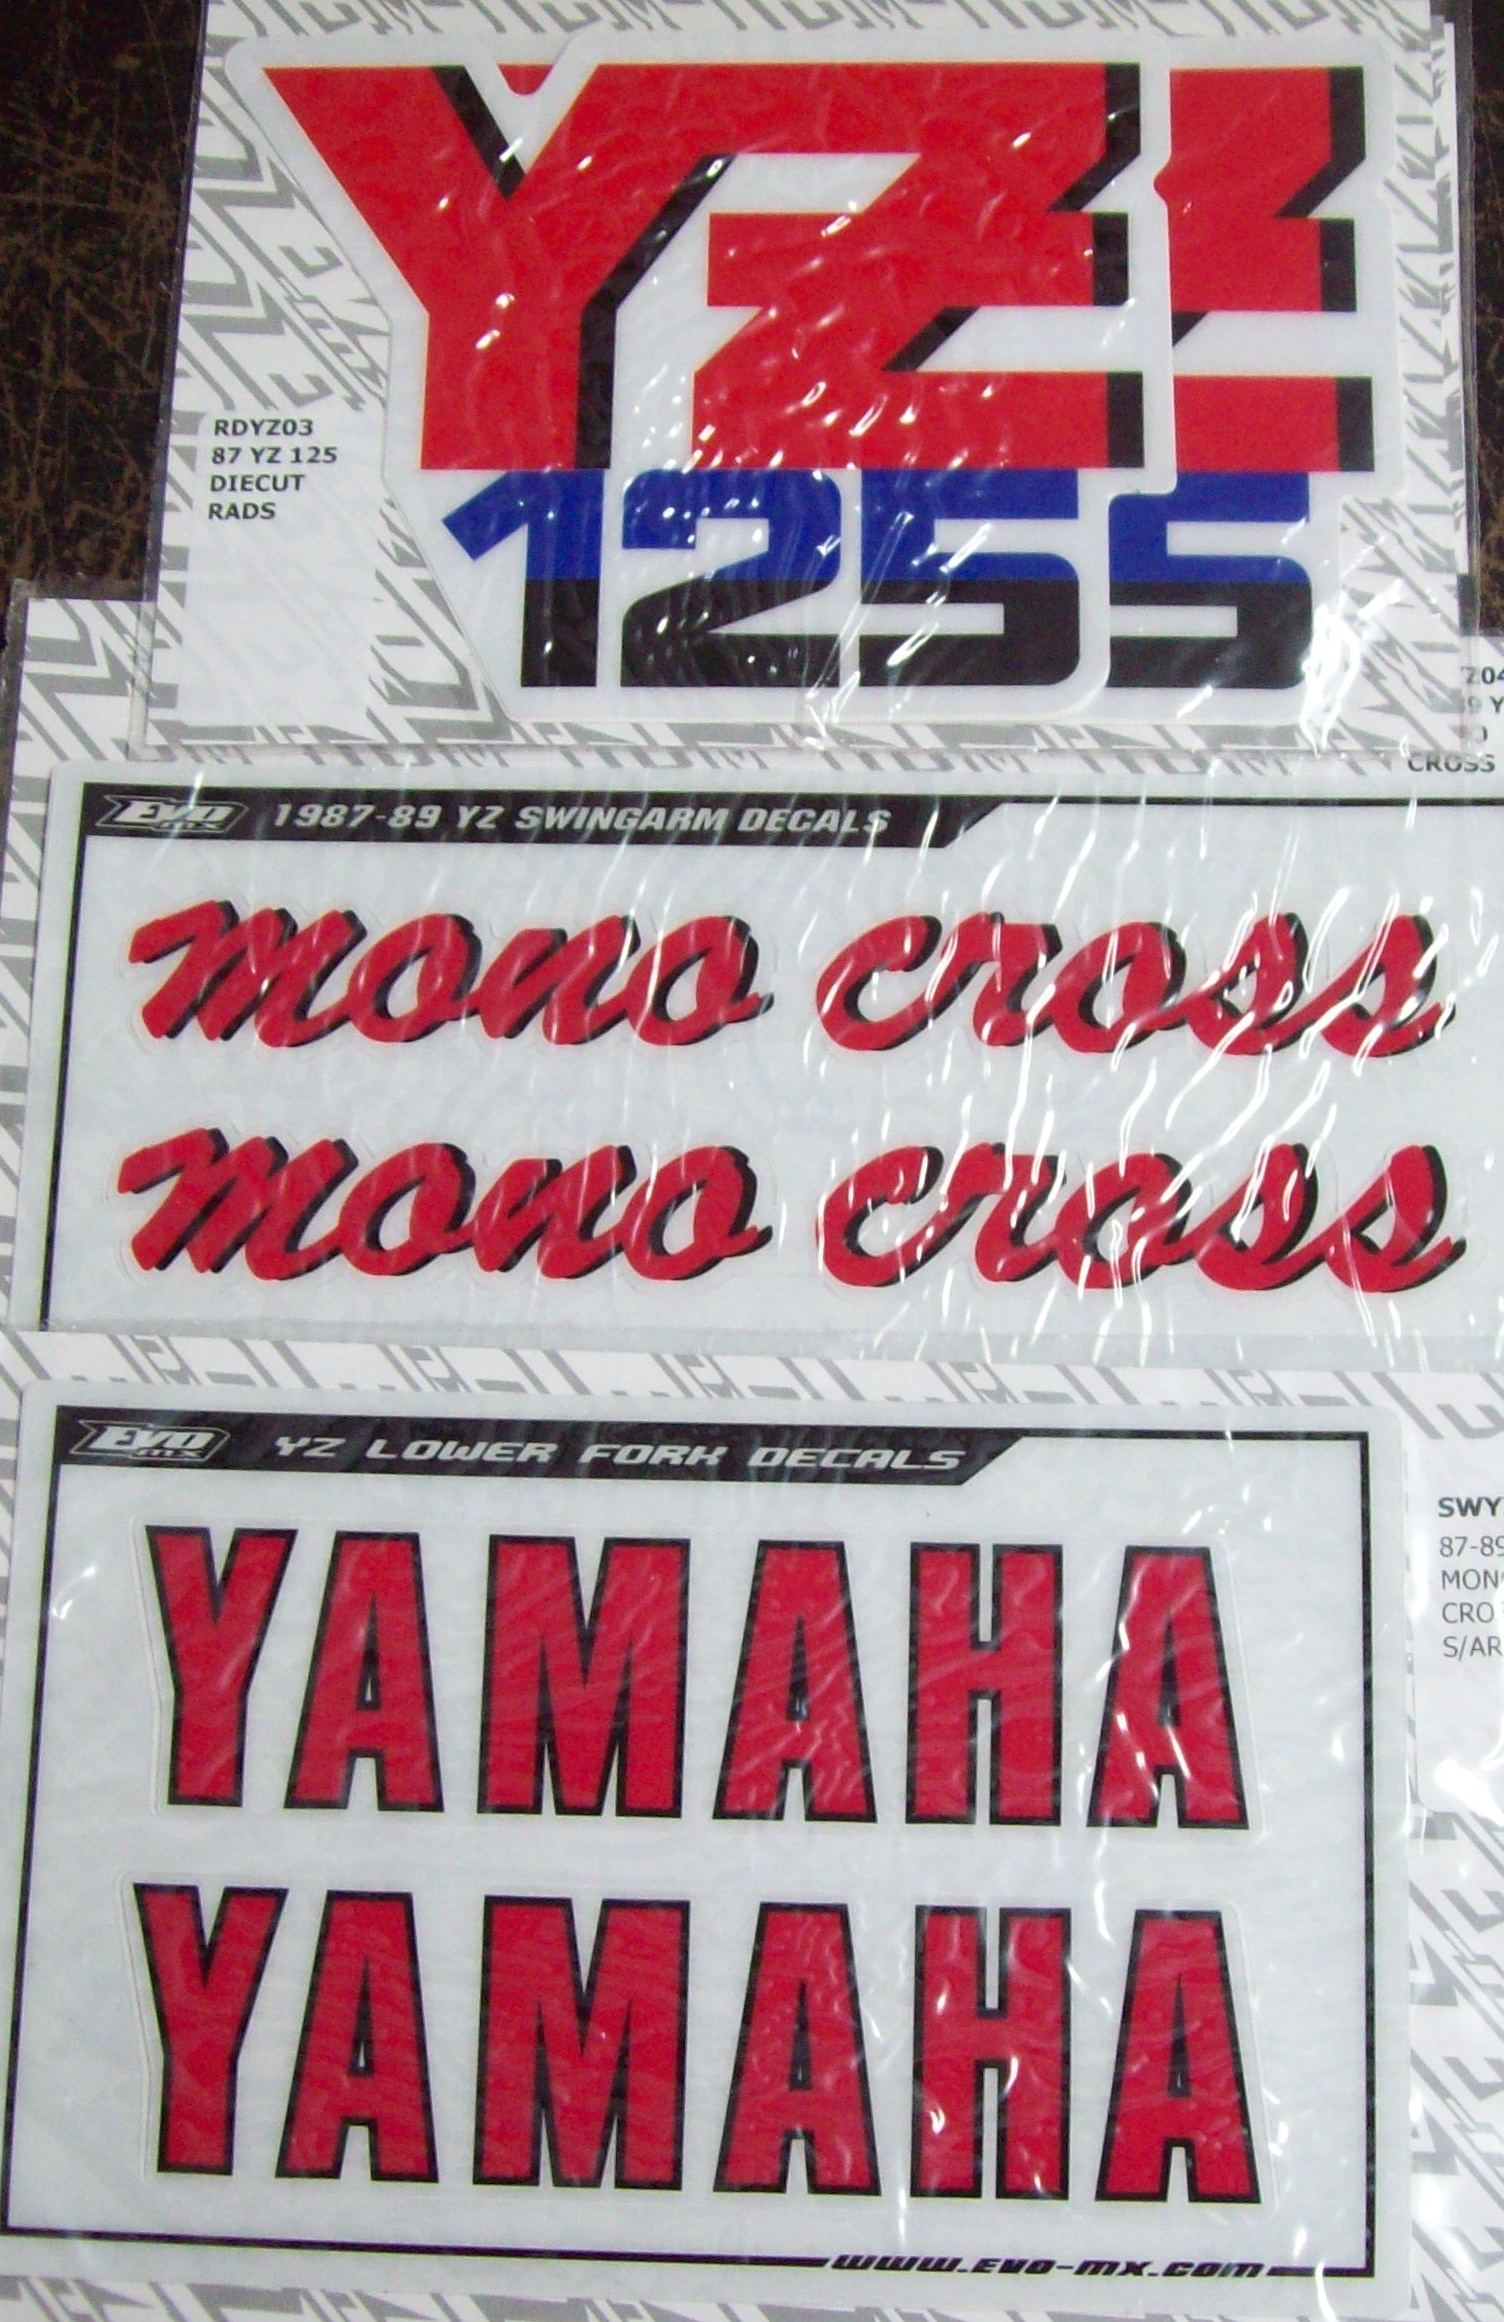 1987 Yamaha YZ 125 Decal Kit Rads, Swingarm, Forks